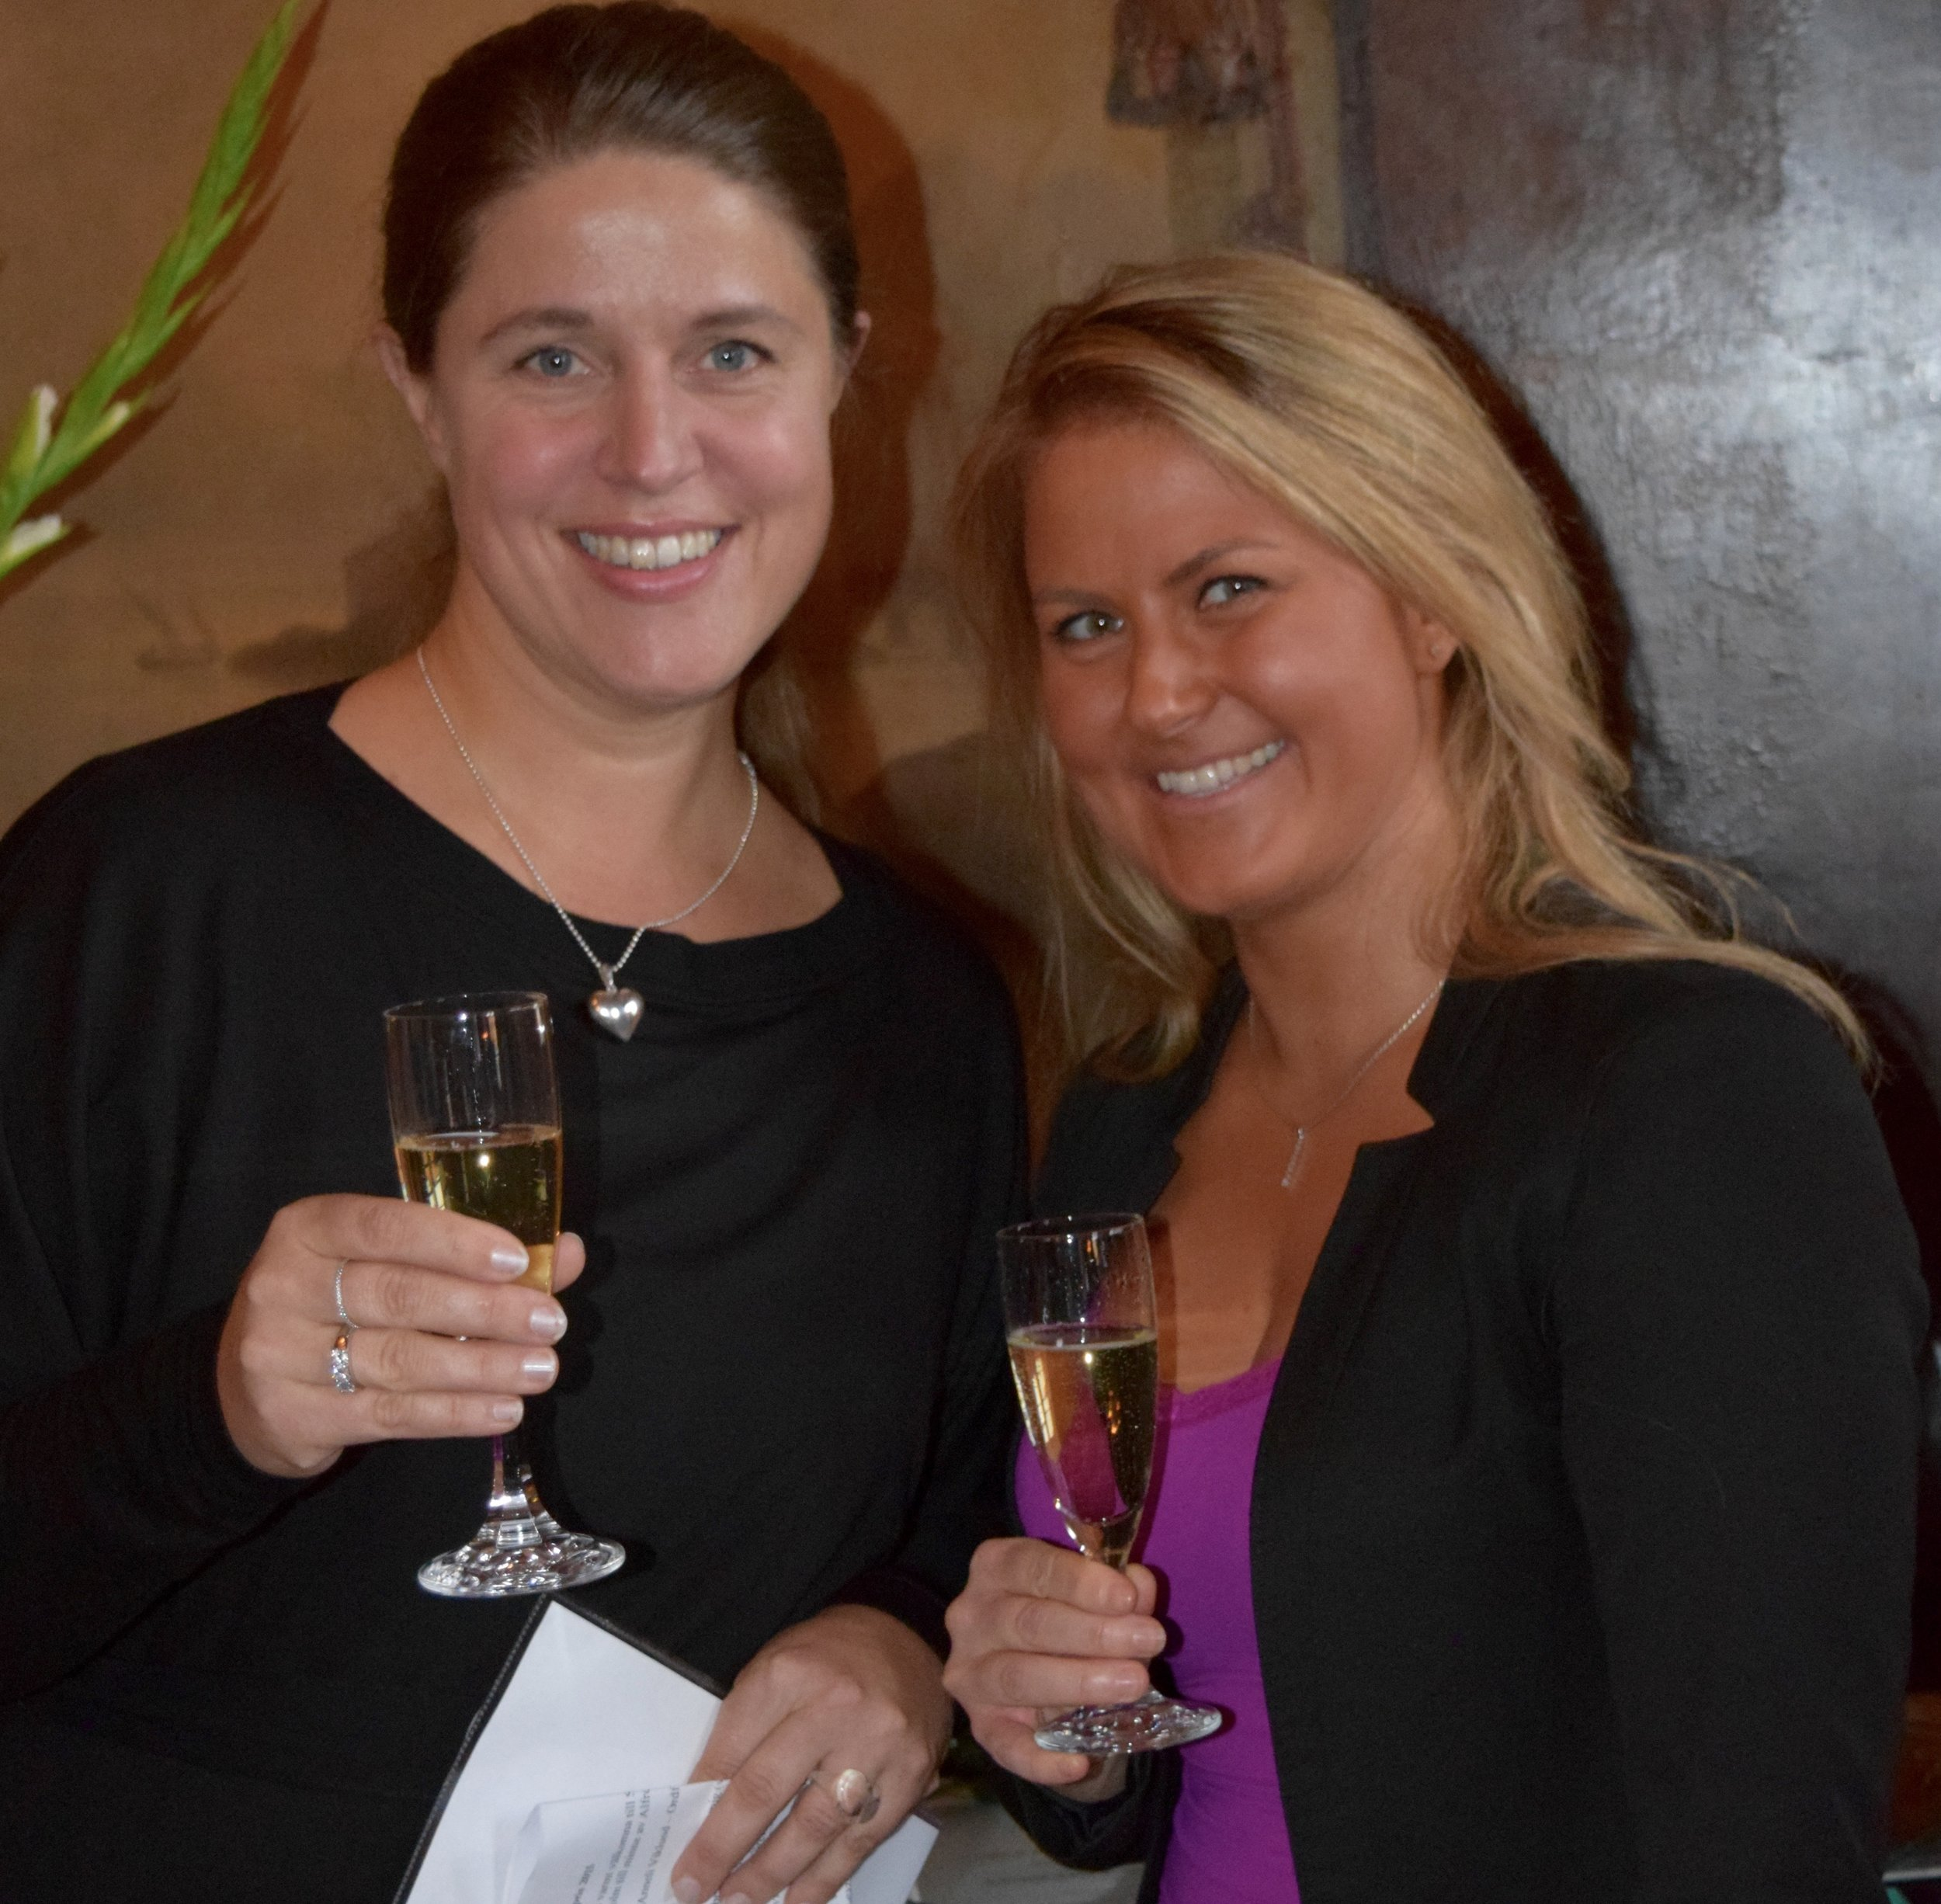 A great moment with the talented Anneli Viklund at the SKAPA award ceremony celebrating 30minMBA's journey to date.